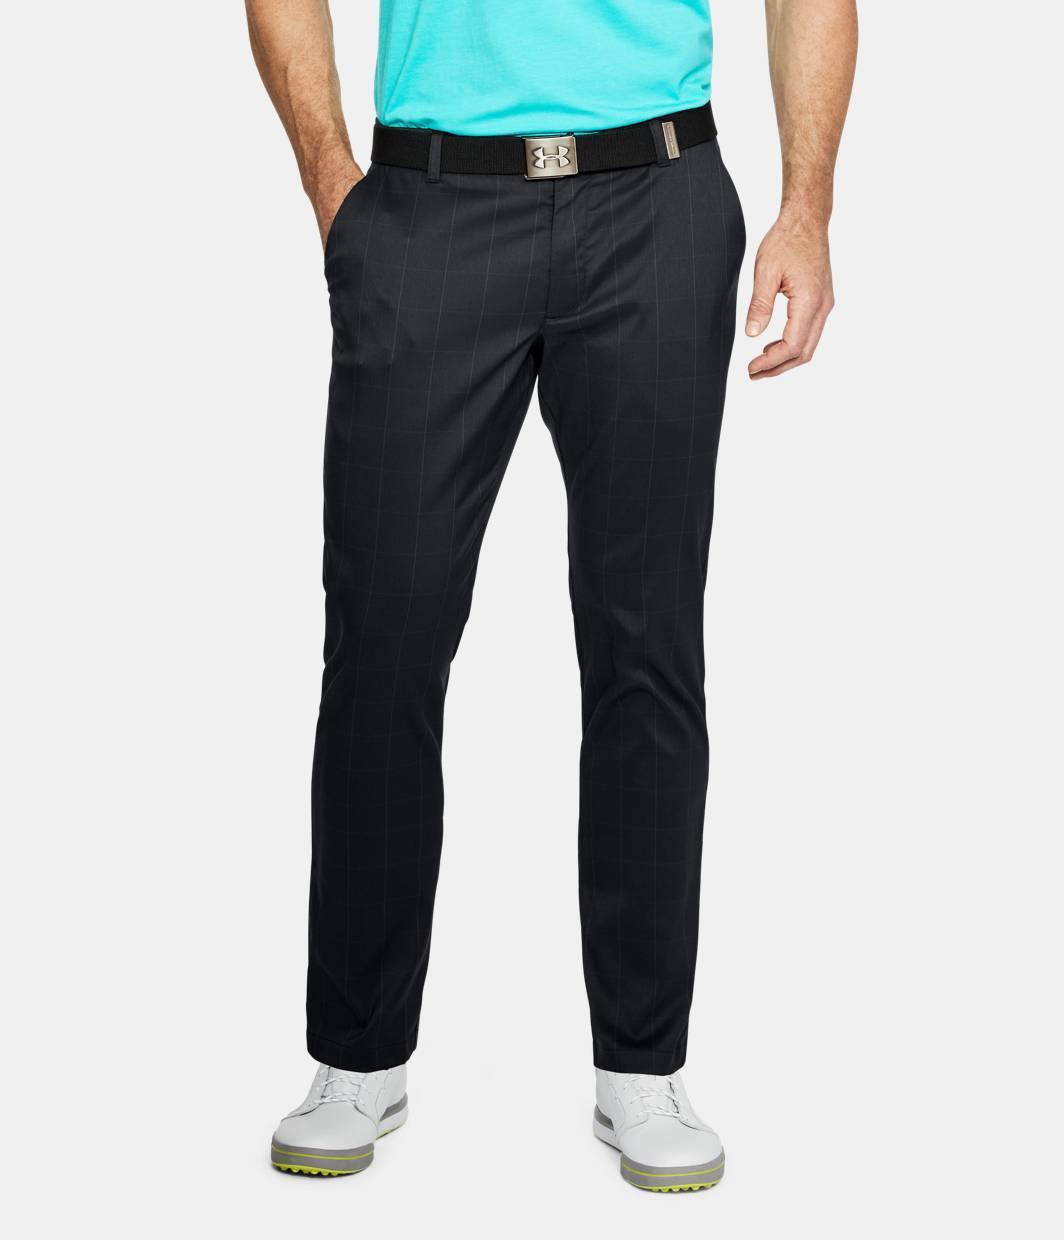 Under Armor Junior Golf Pants